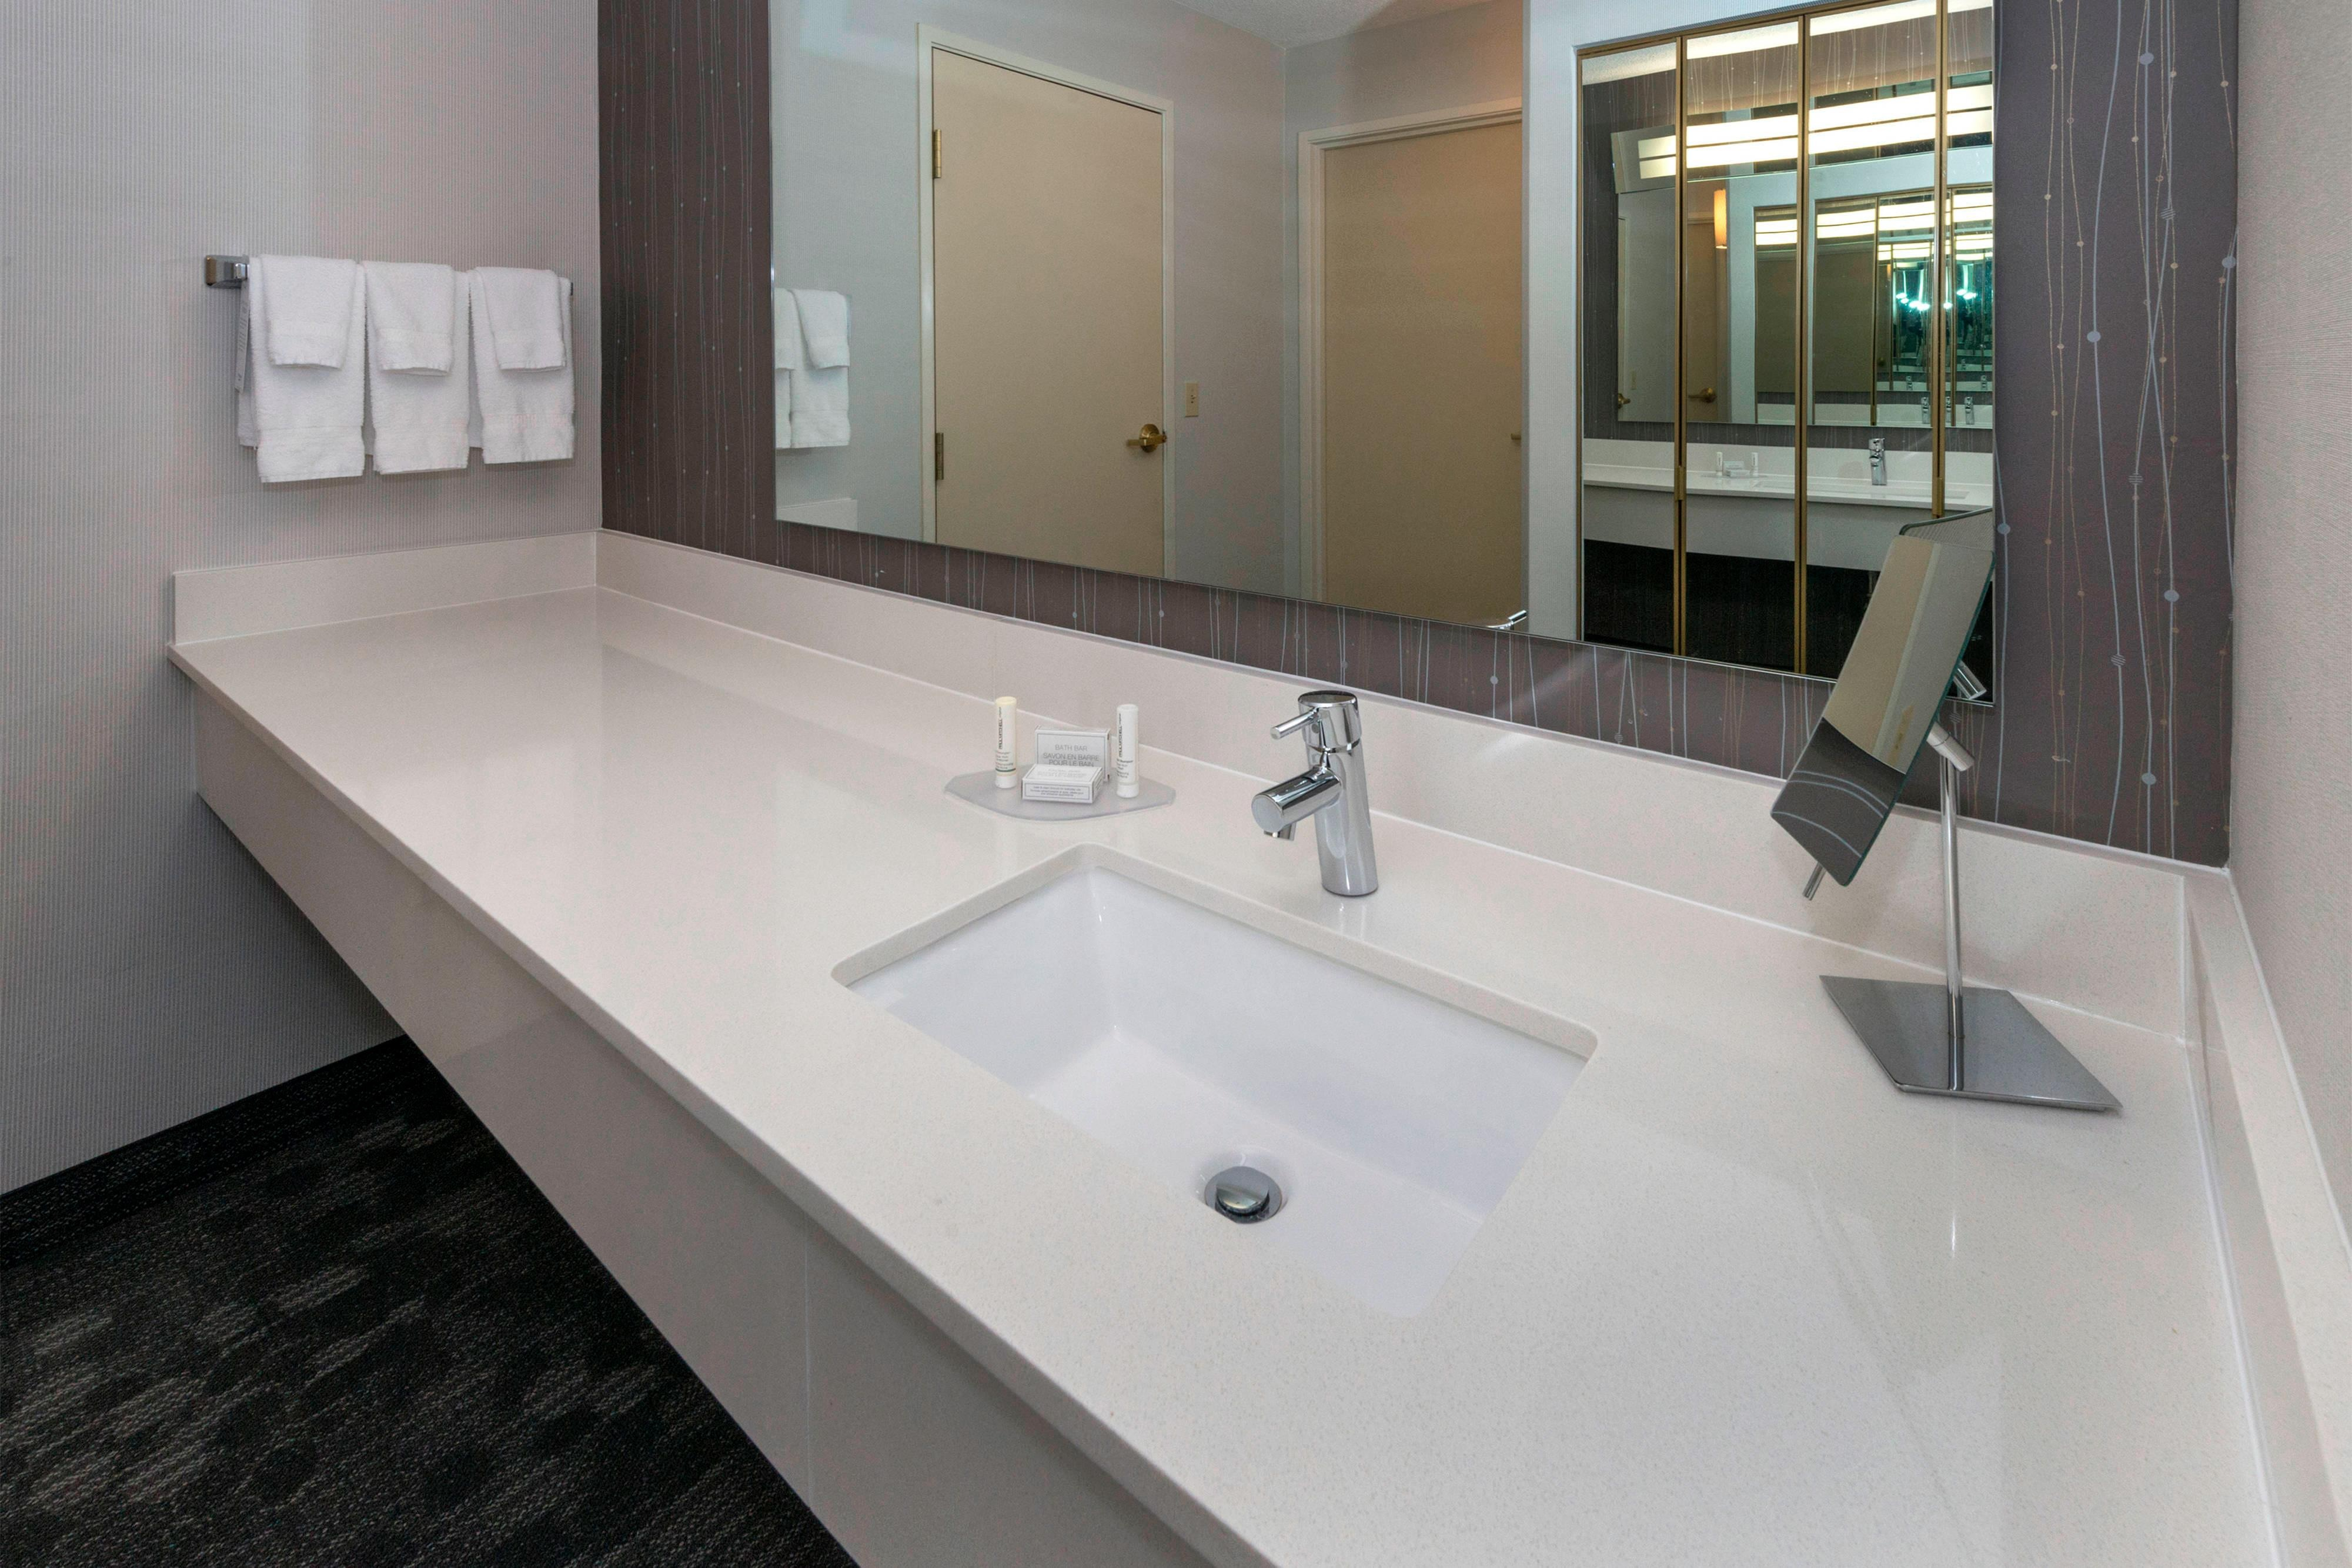 Lakeland Suite Bathroom Vanity